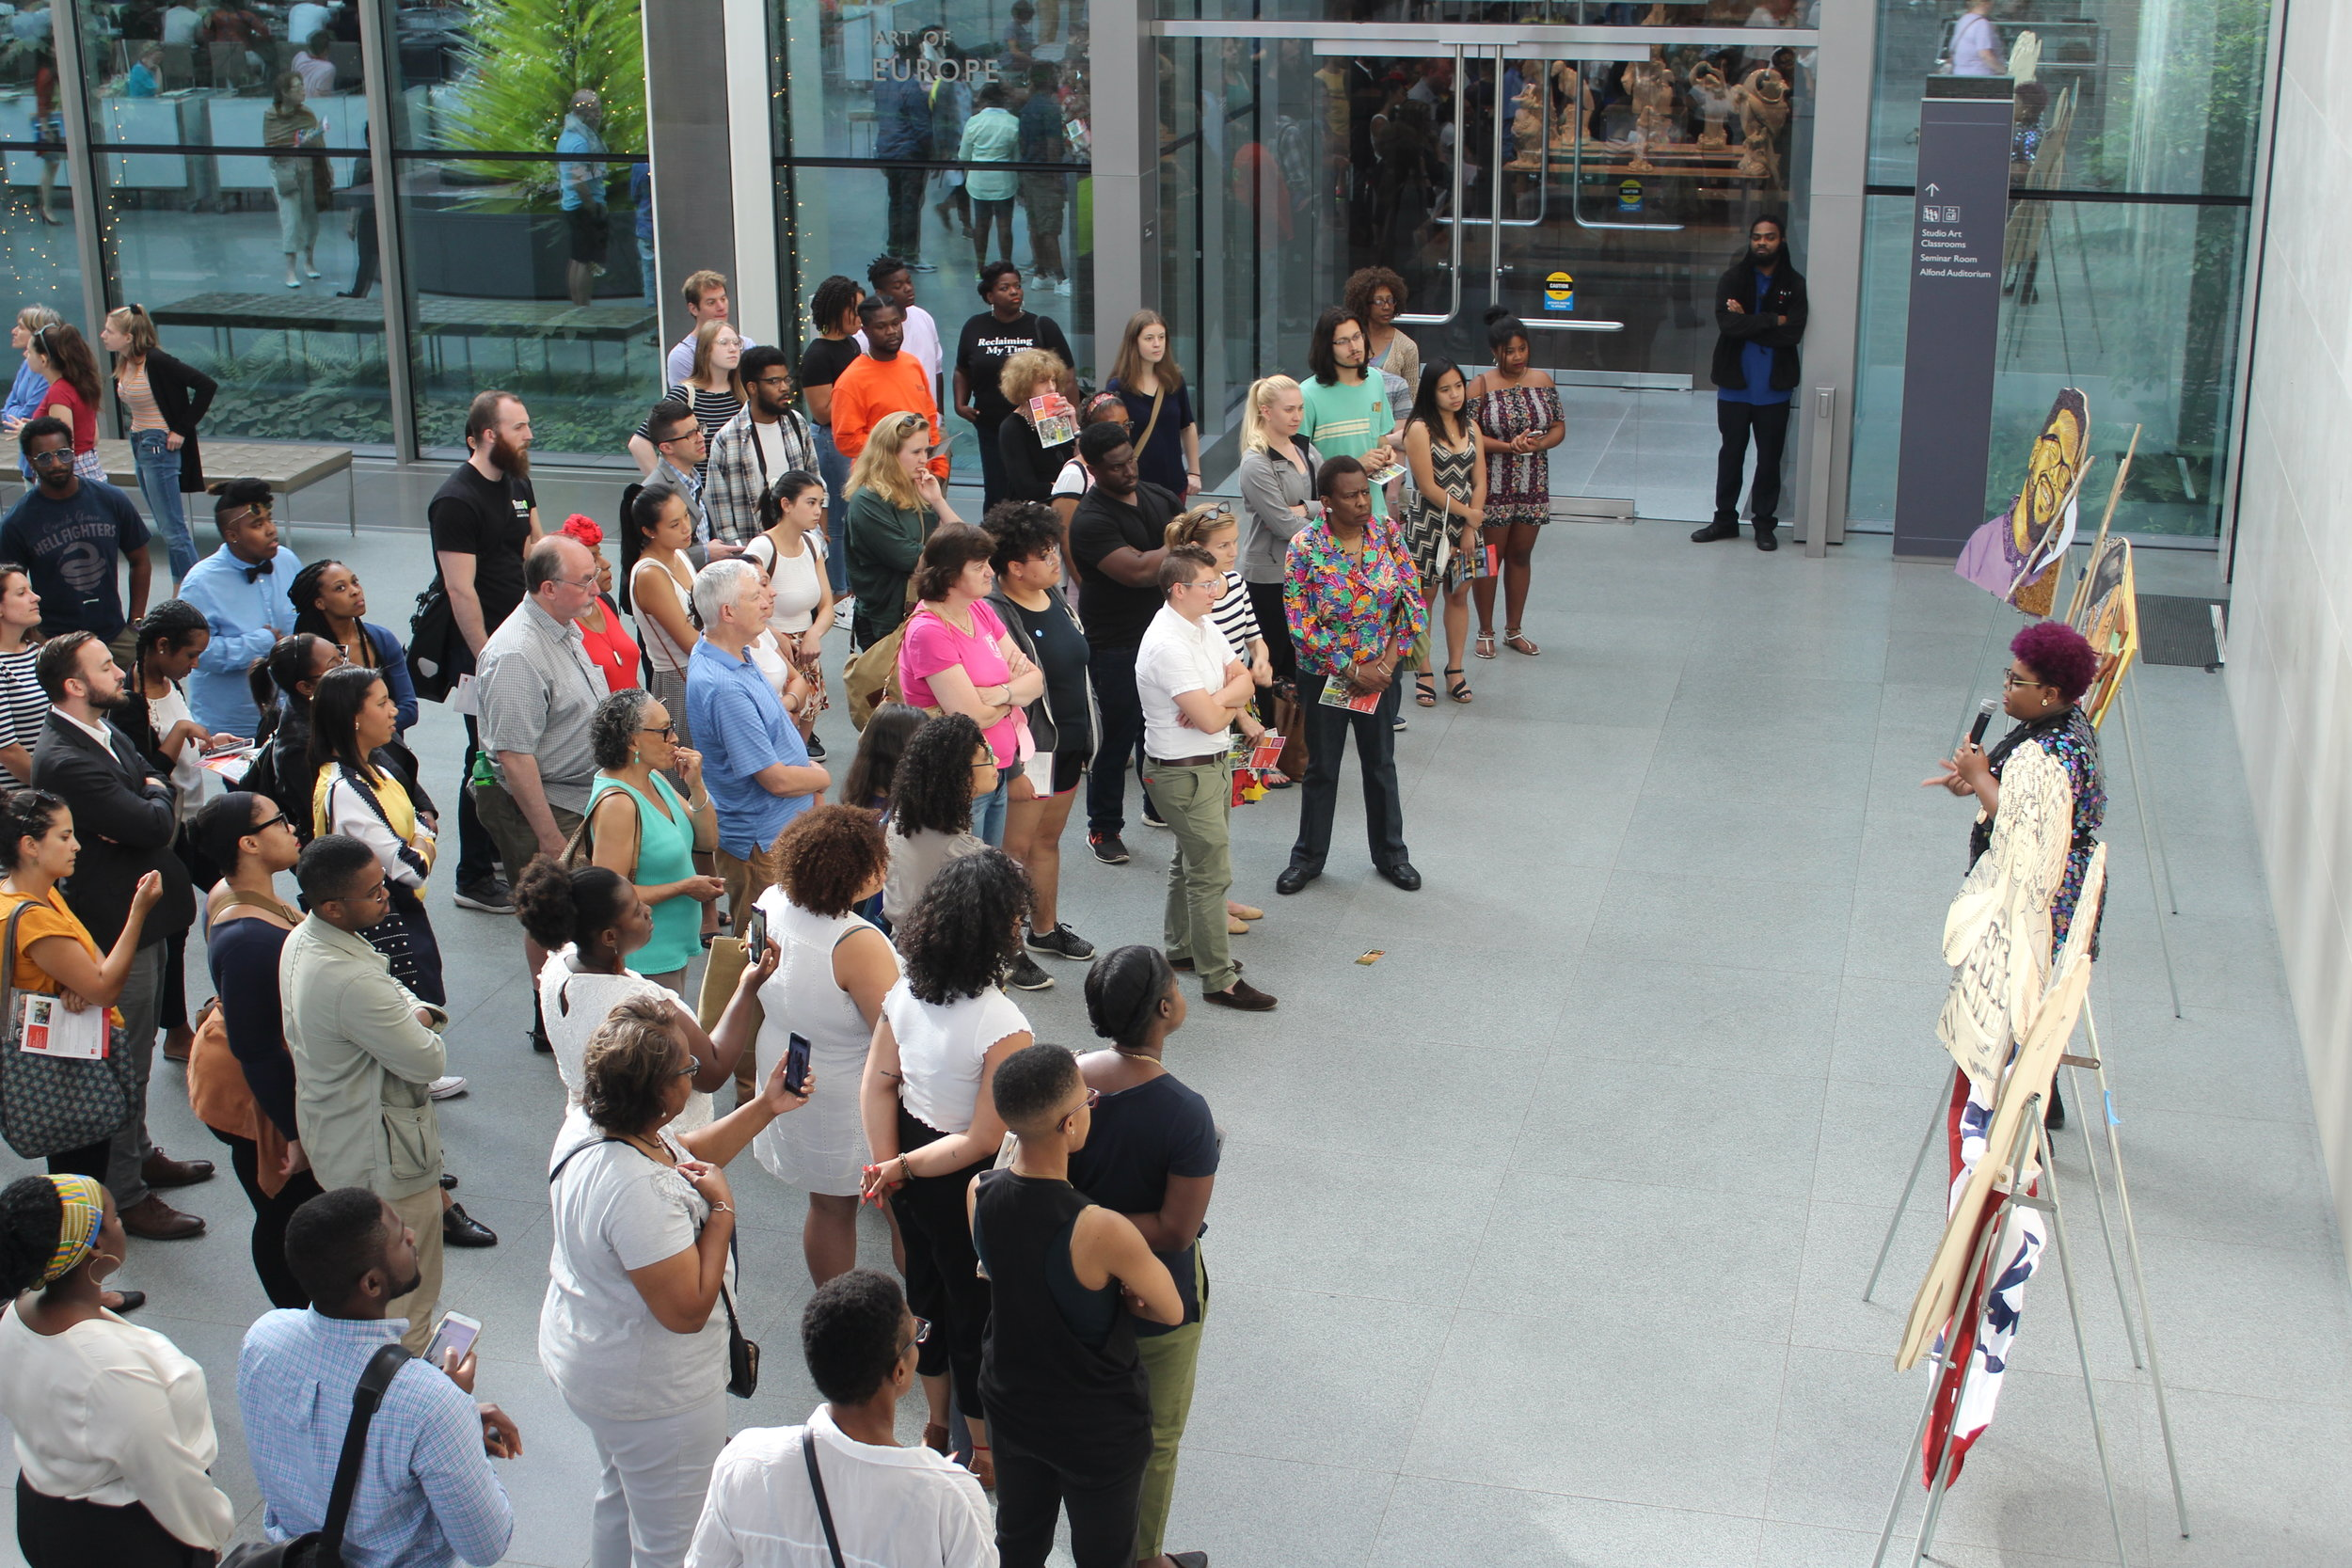 Engaging a crowd about my work during an artist talk at the Museum of Fine Arts.